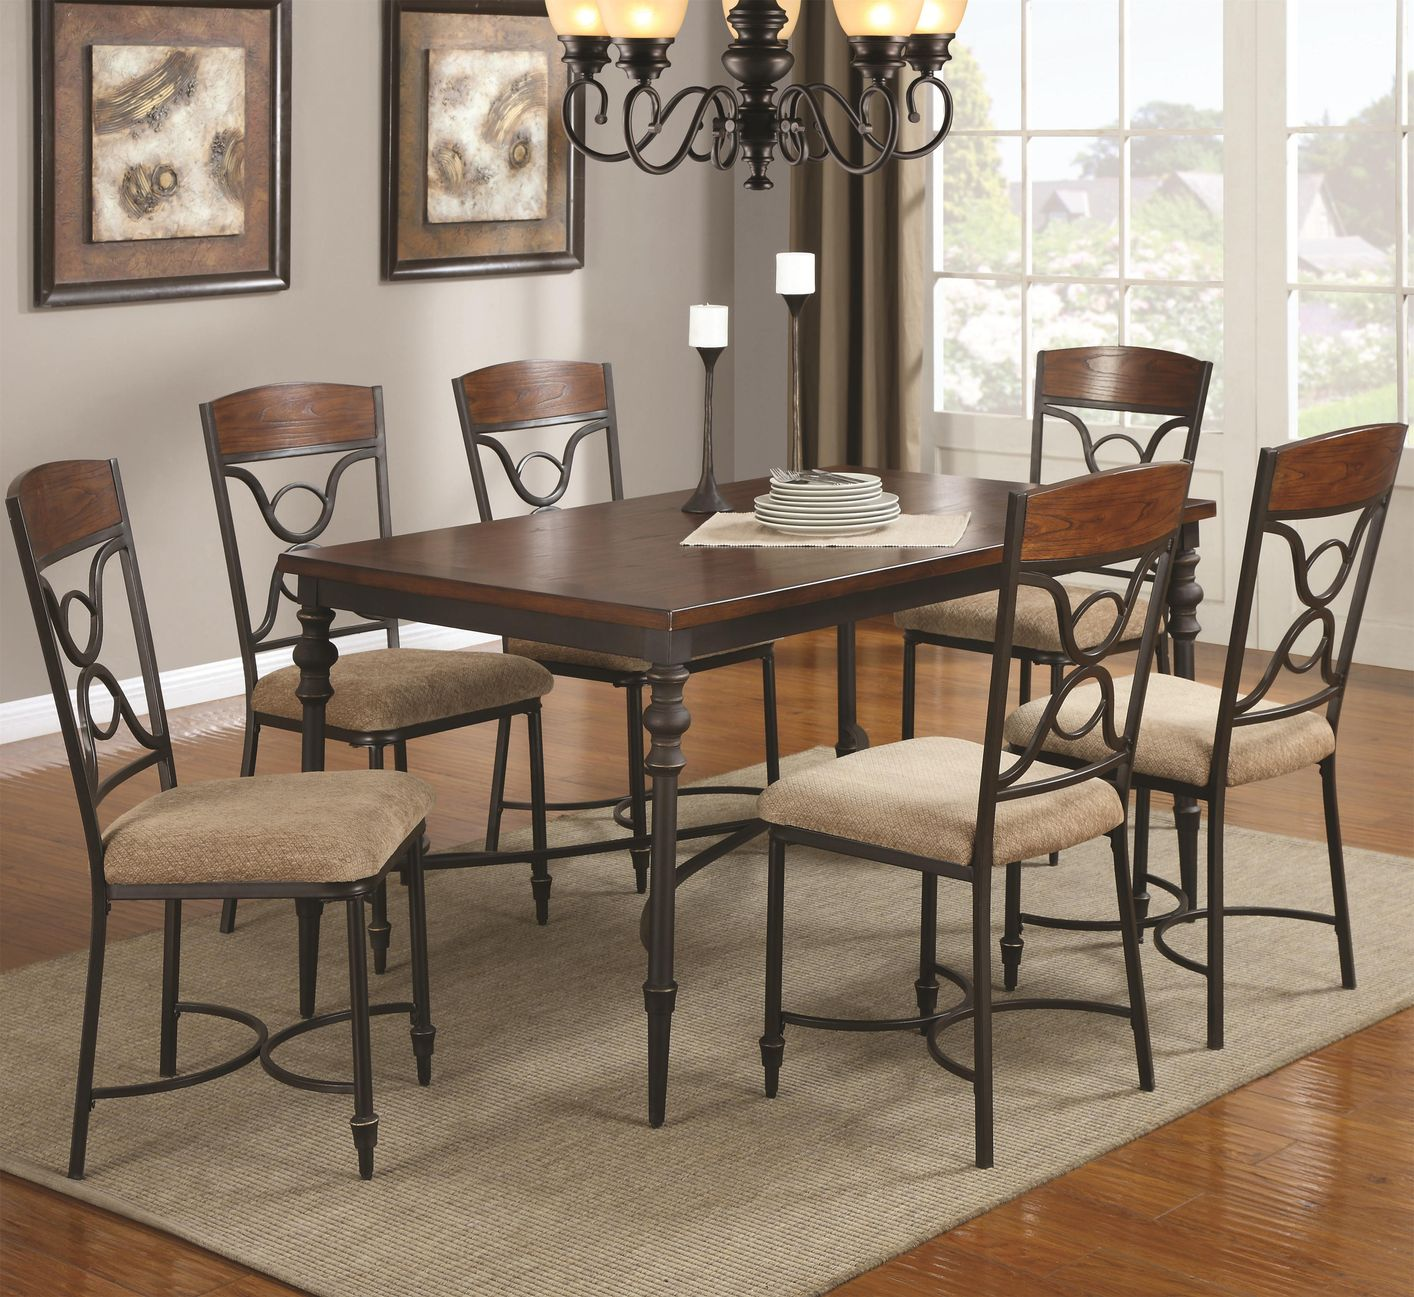 Attrayant Klaus Cherry Metal And Wood Dining Table Set